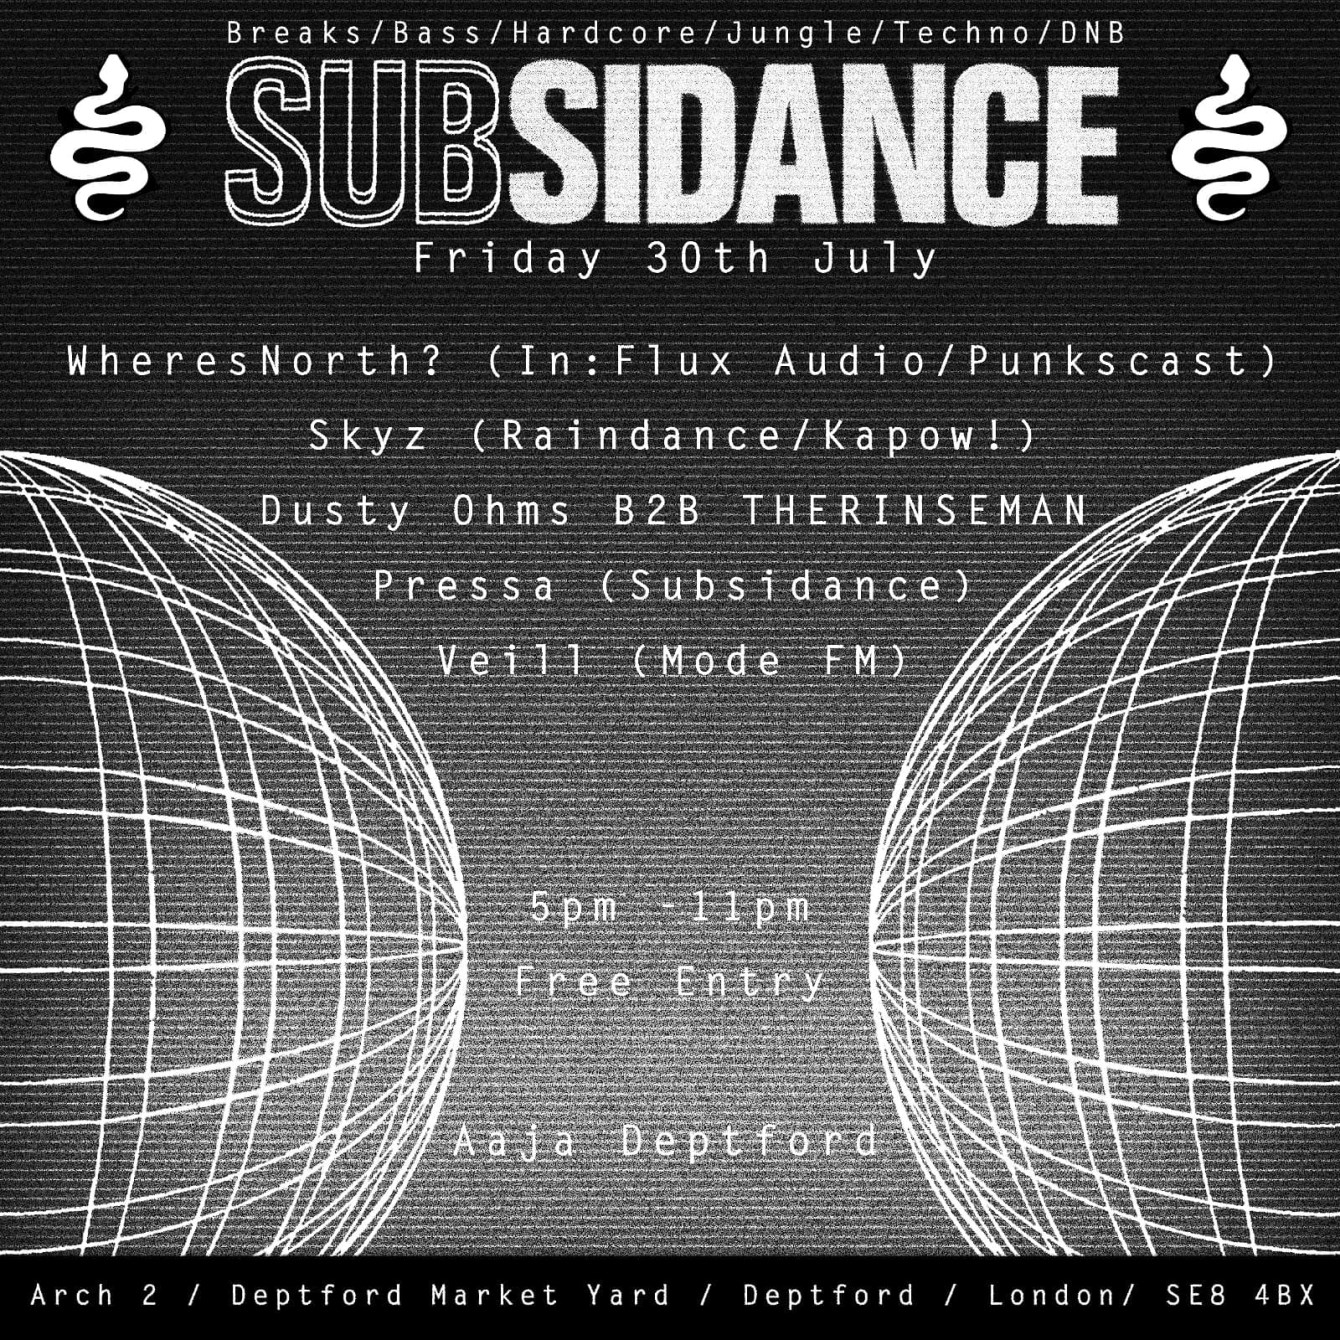 Subsidance - Flyer front